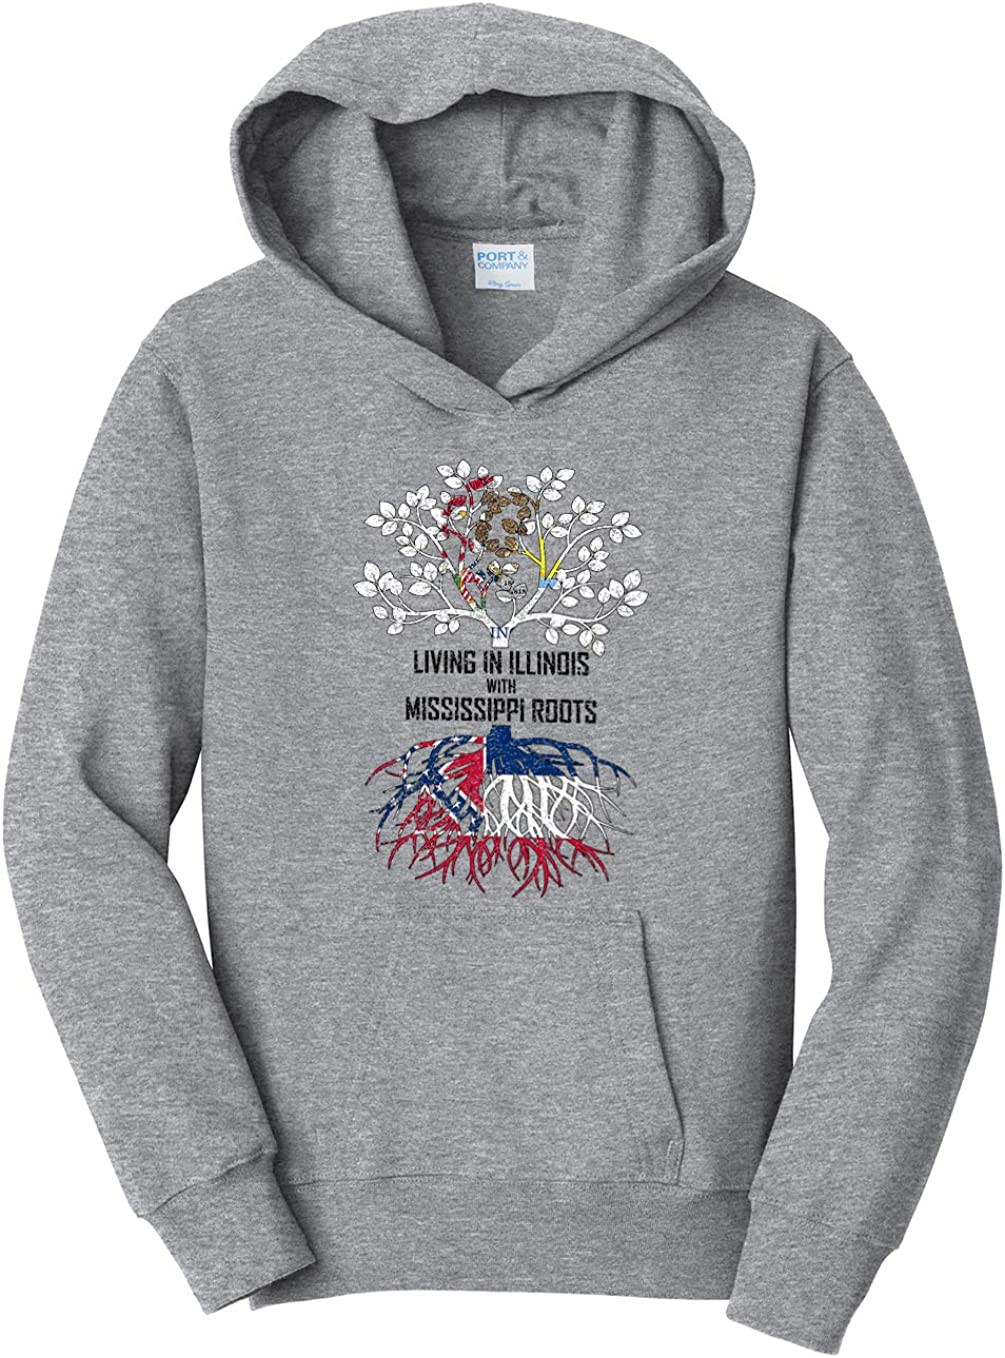 Tenacitee Girls Living in Illinois with Mississippi Roots Hooded Sweatshirt